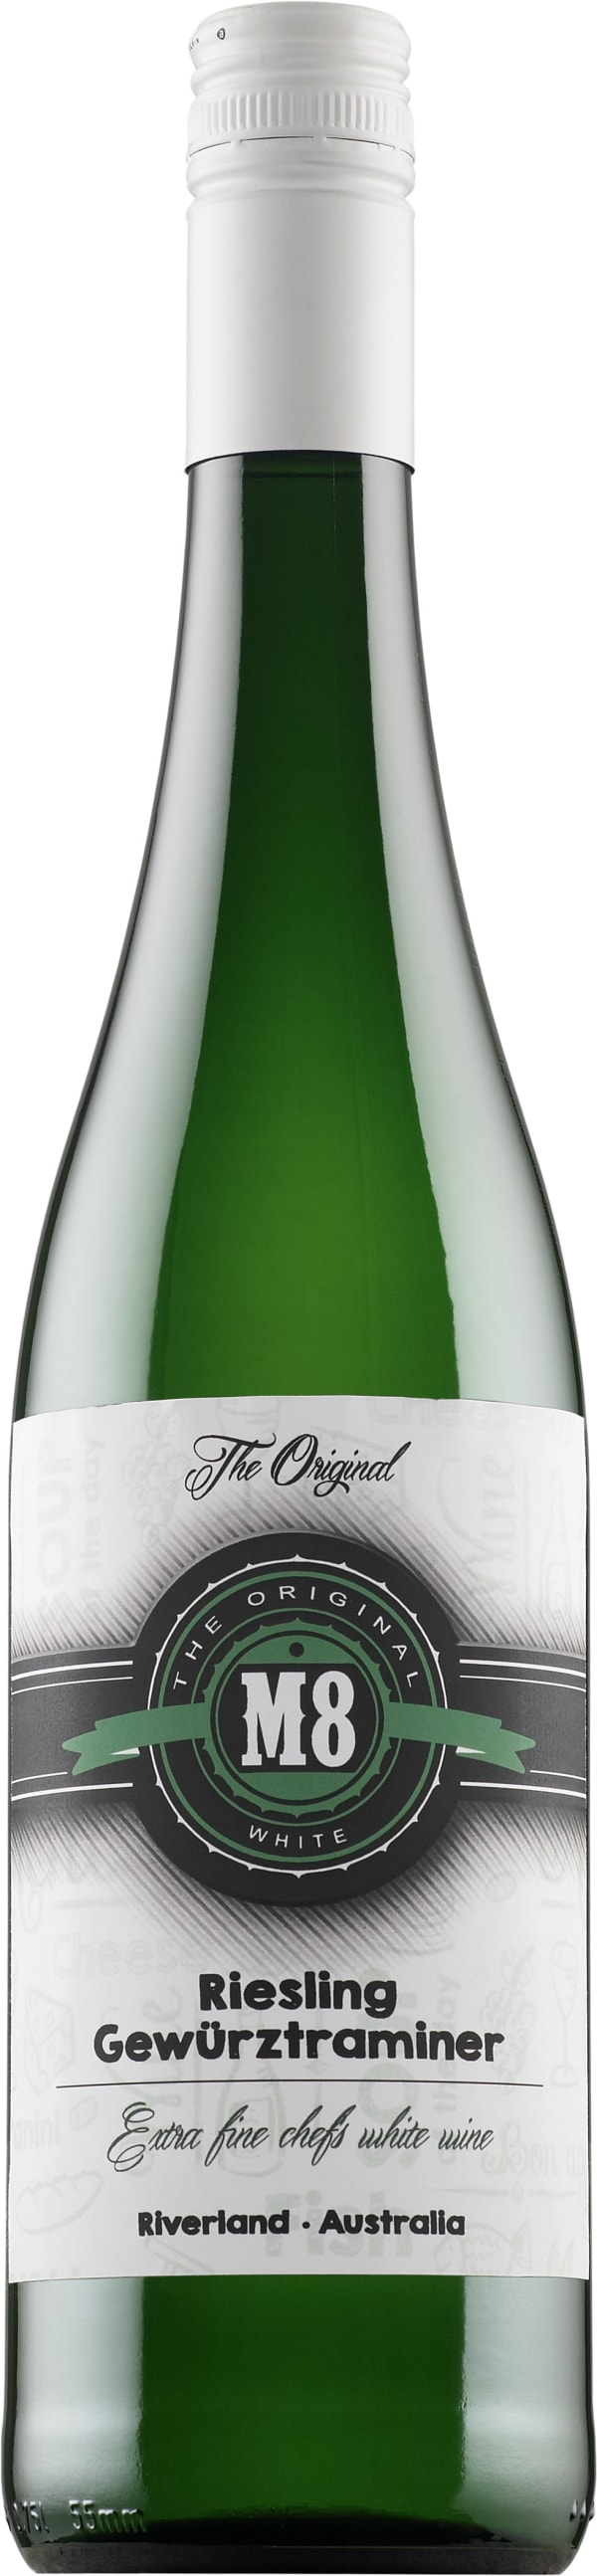 The Original M8 Riesling Gewürztraminer 2015